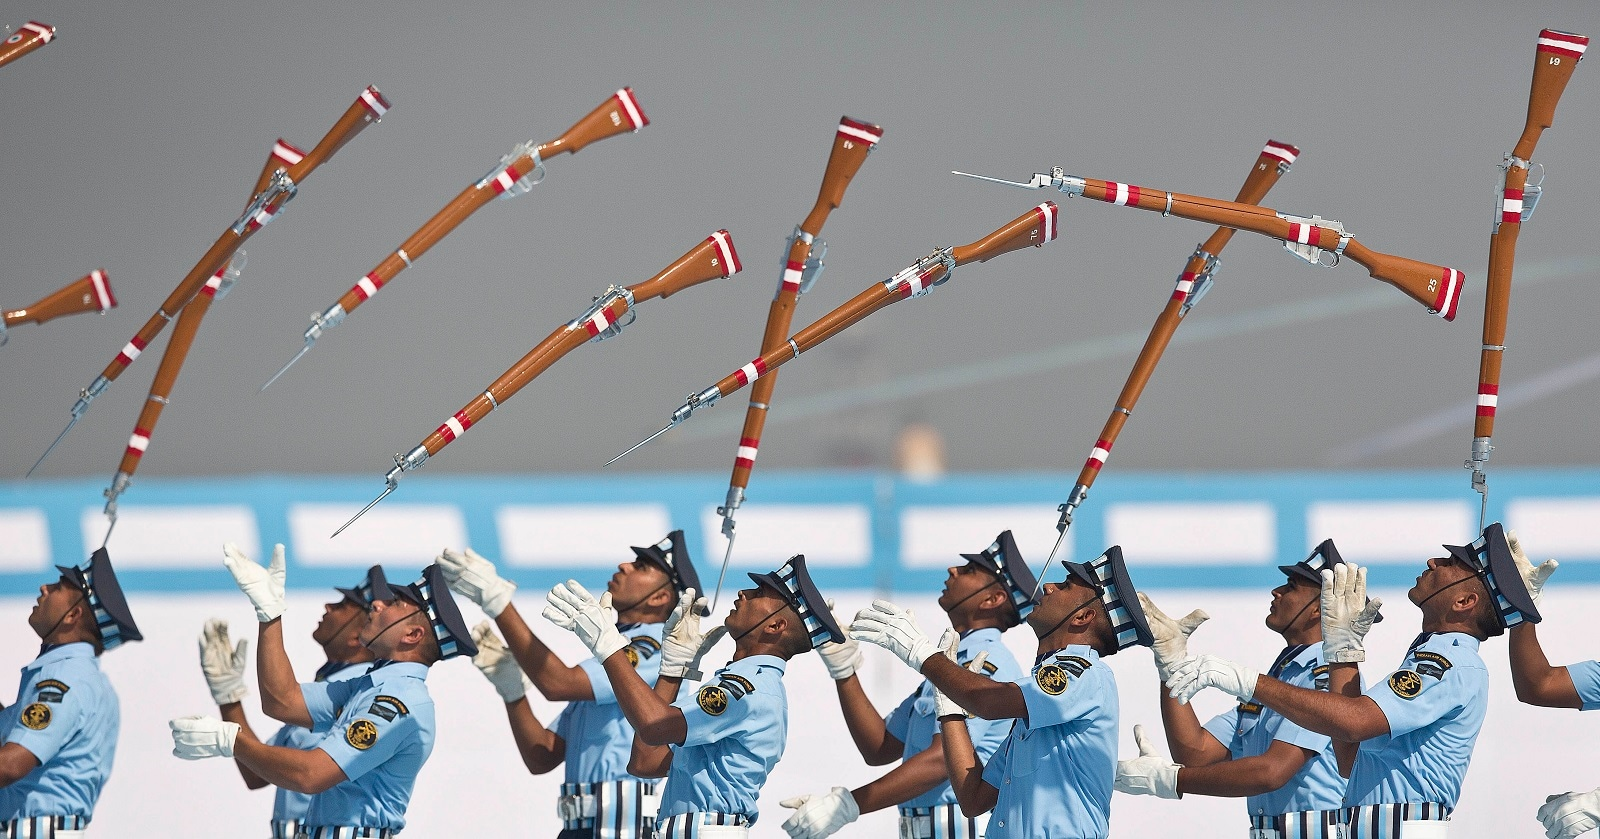 Indian Air force personnel perform a drill during the President's Standard and Colour Presentation to the IAF Number 118 helicopter unit and air defense college, at Air Force Station in Gauhati. (AP Photo/Anupam Nath, File)